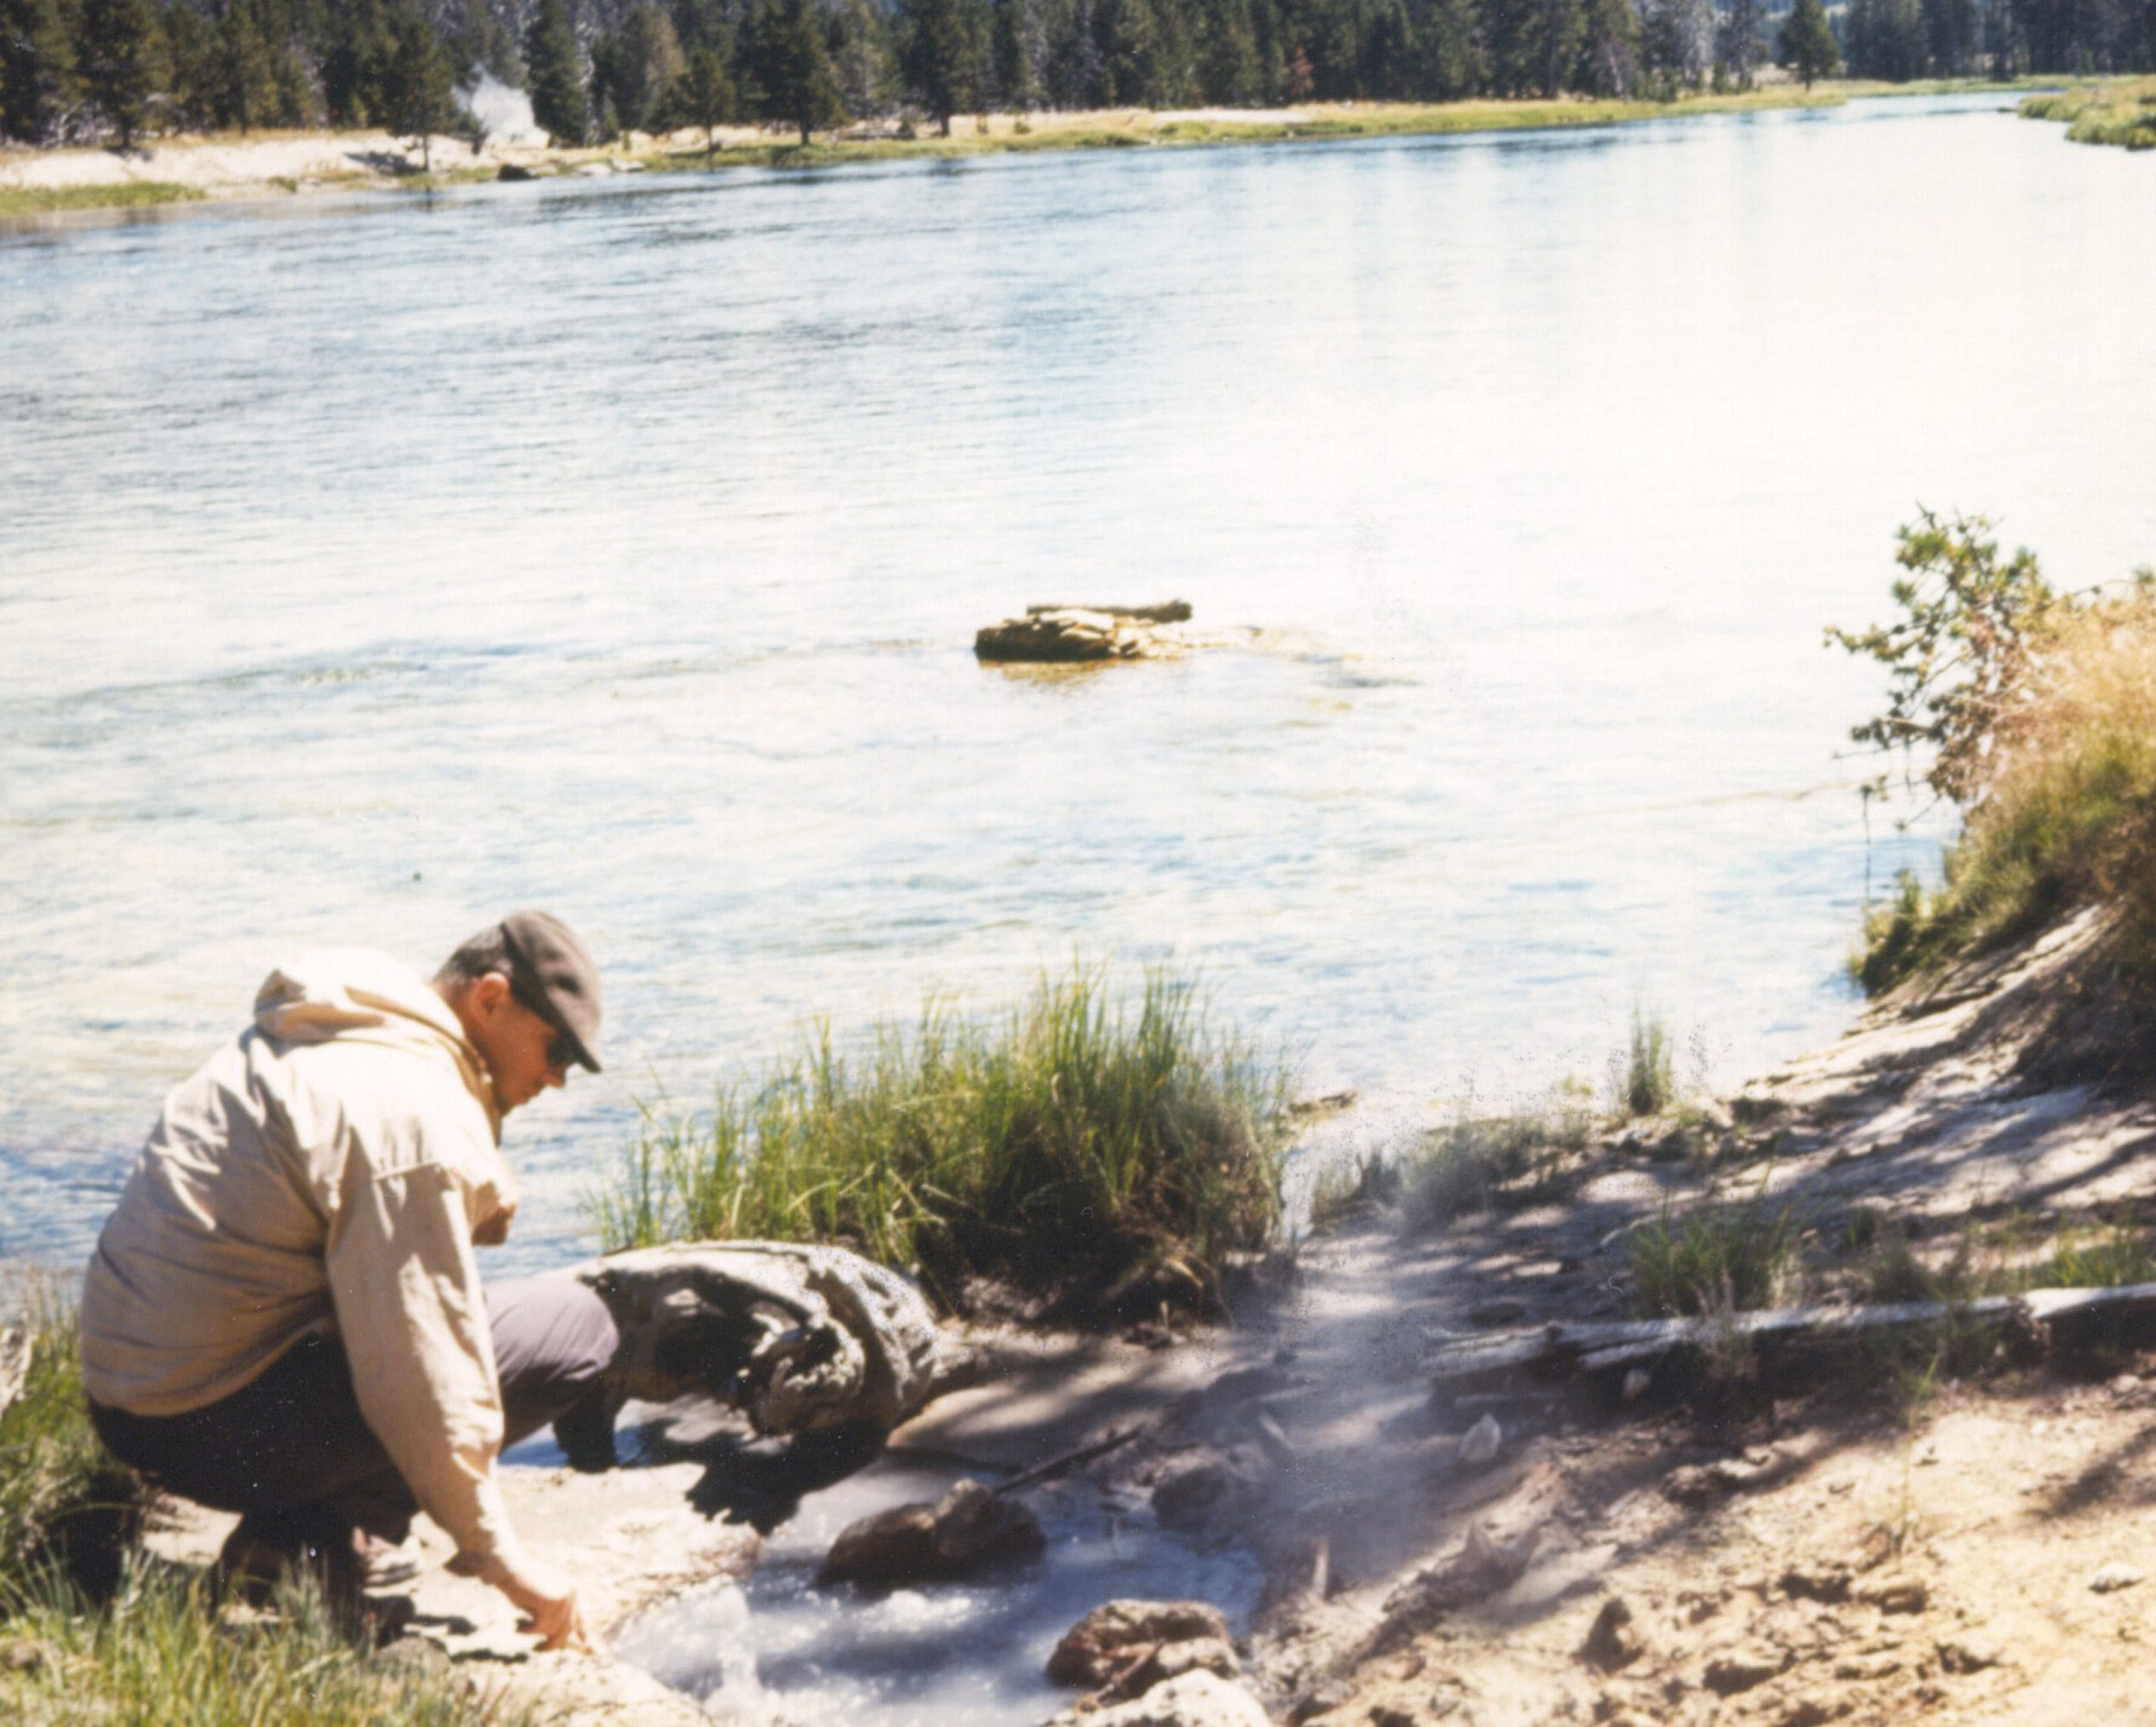 How a 1960s discovery in Yellowstone made millions of COVID-19 PCR tests possible